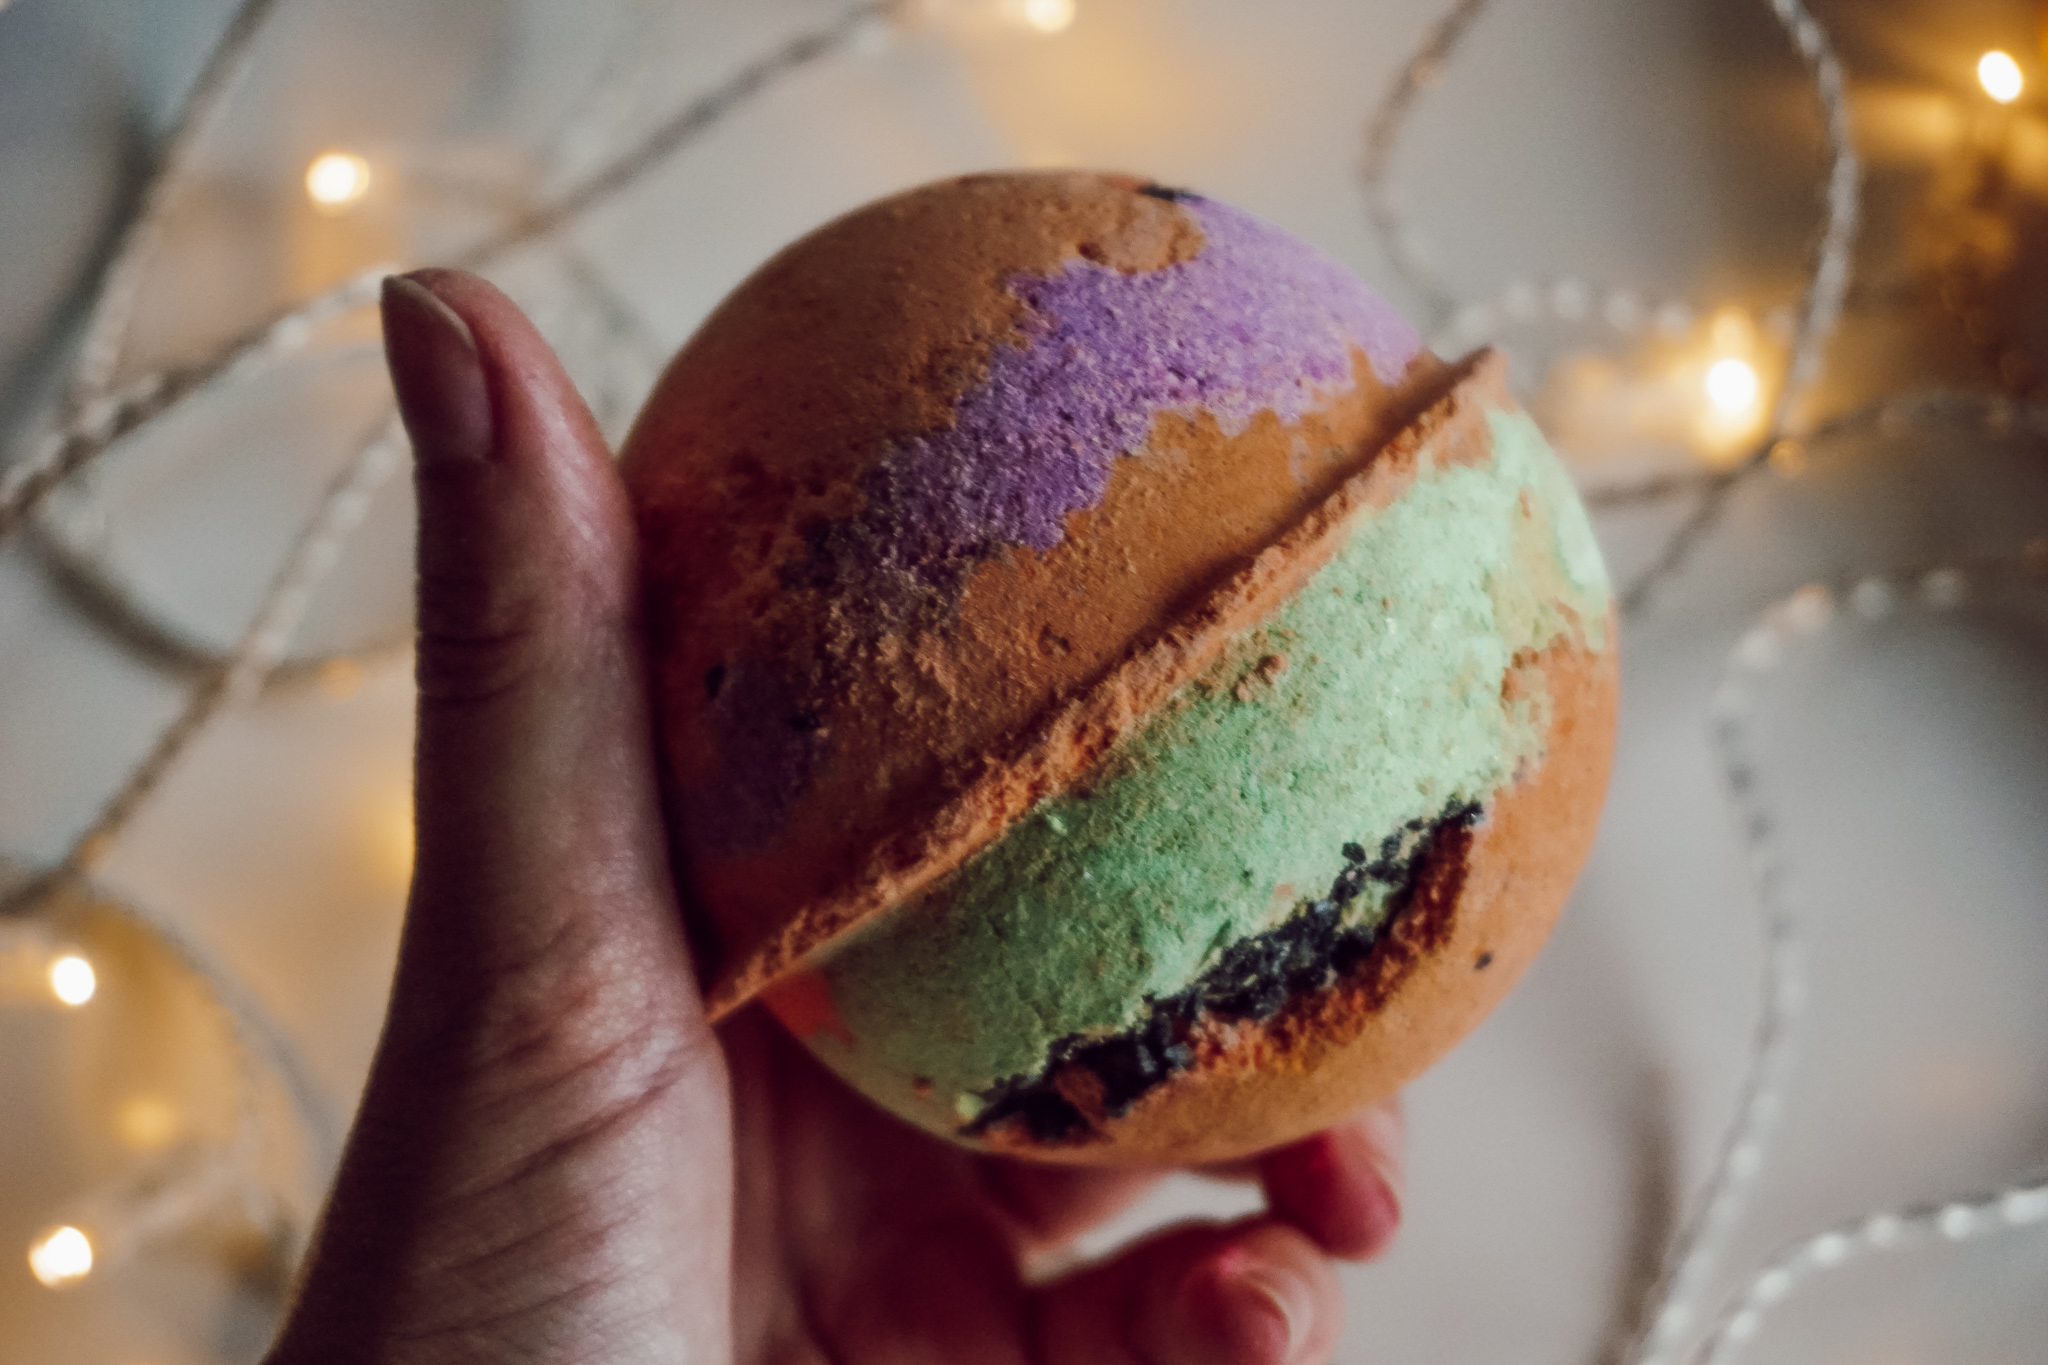 Lush Bathbomb Halloween